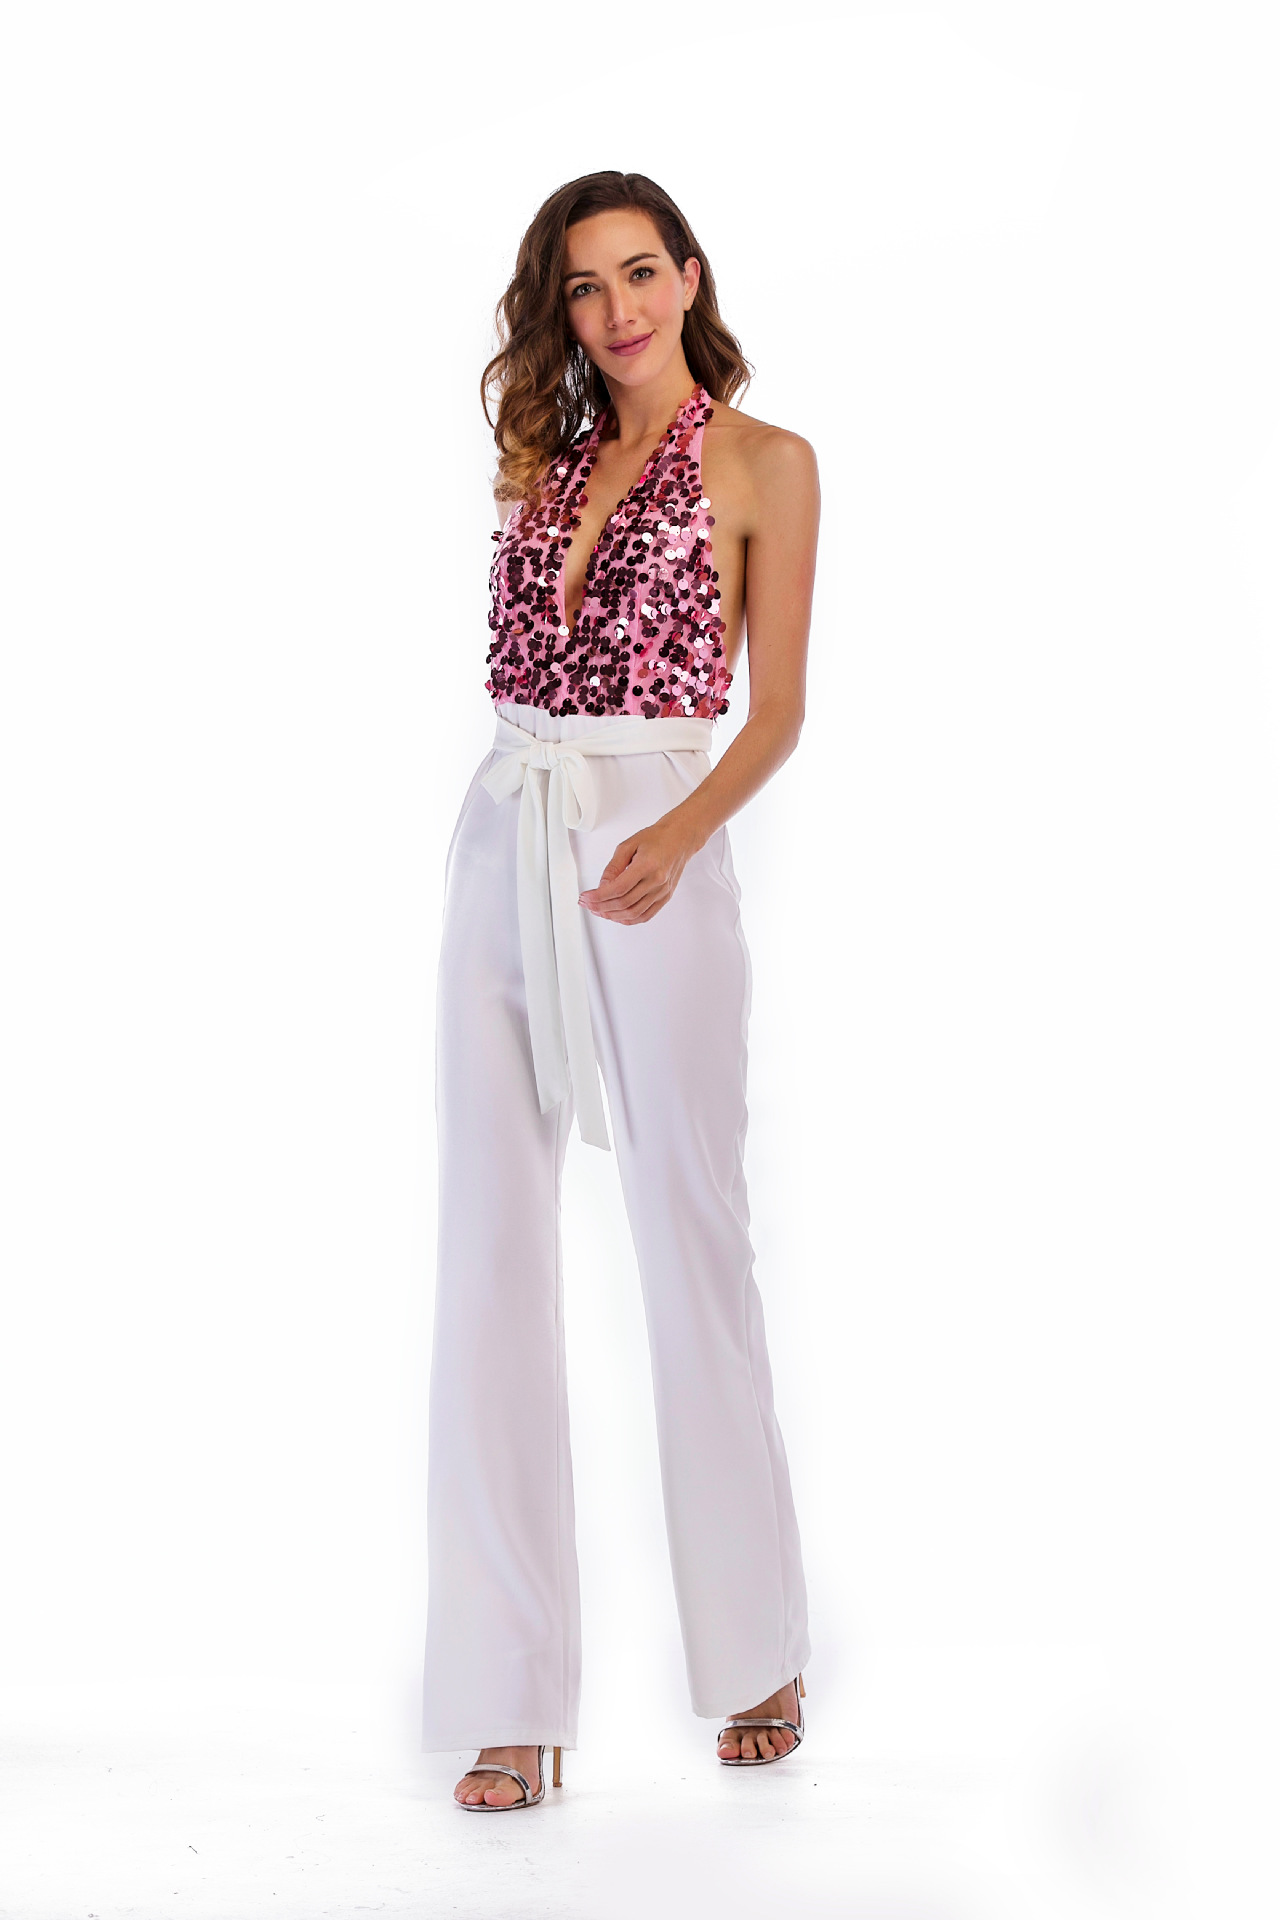 plus size off white white jumpsuit short overall bodycon jumpsuits for women 2018 rompers womens jumpsuit combinaison 468 A